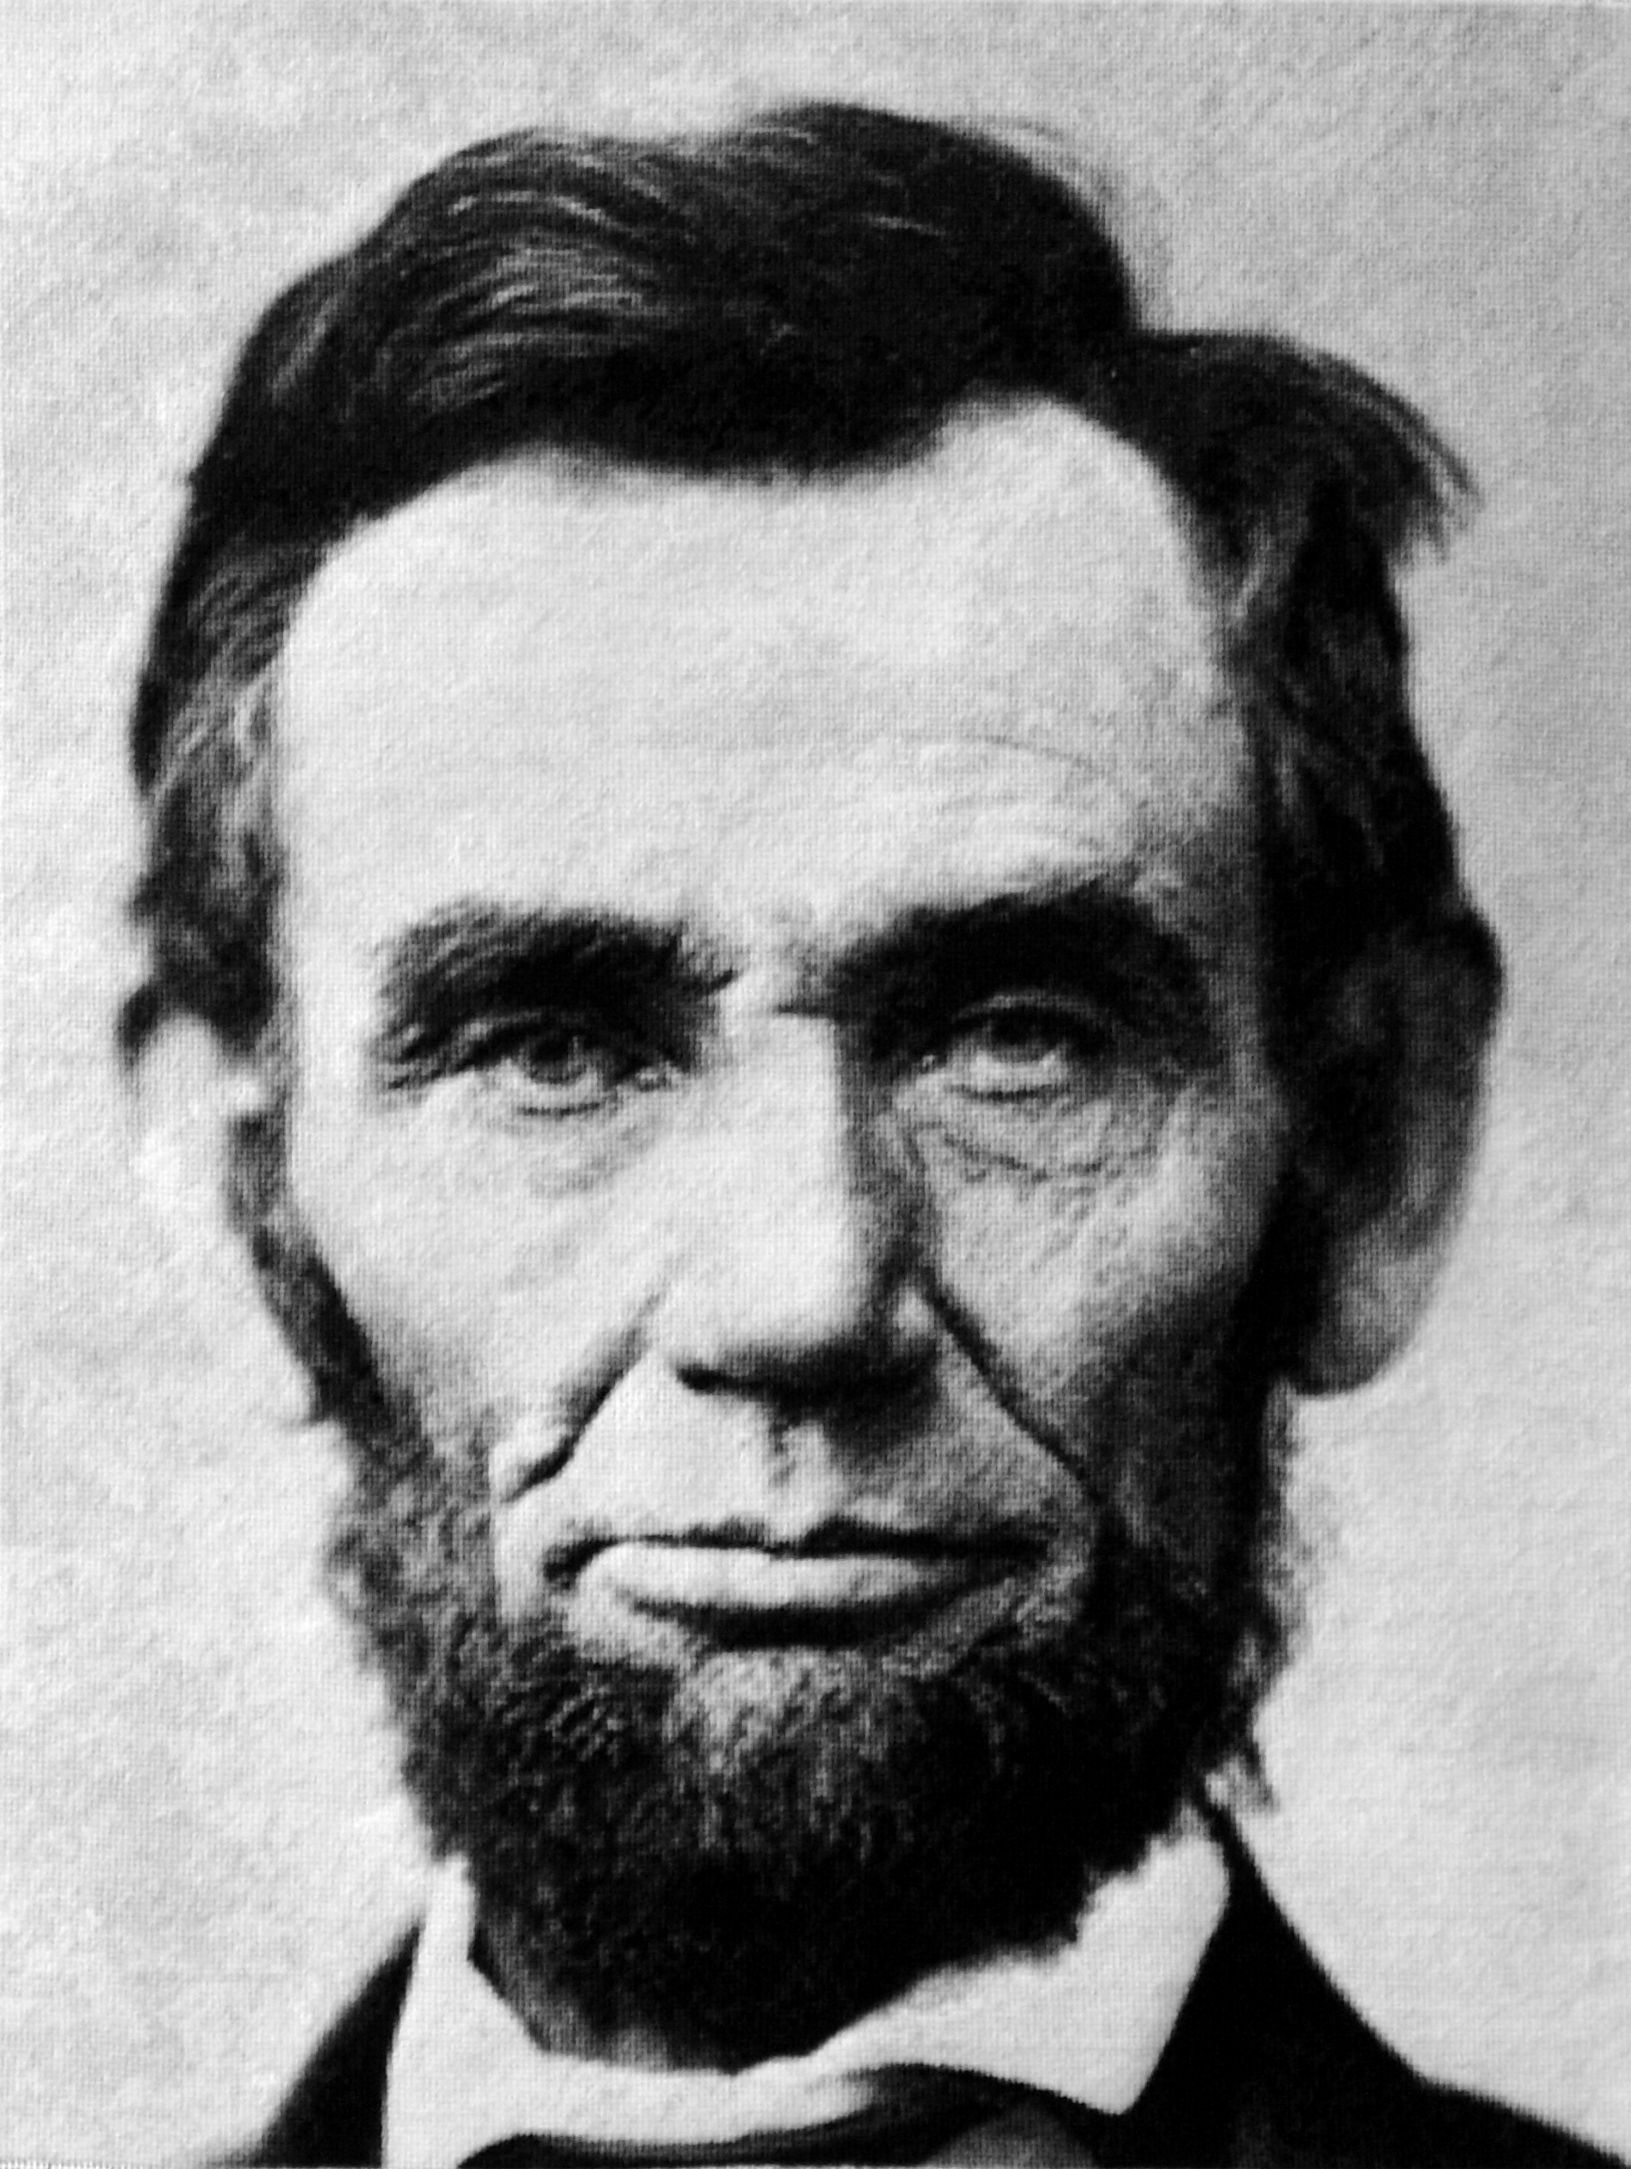 """On February 11, 1861, newly elected President Abraham Lincoln delivered a Farewell Speech to his home state in Springfield, Illinois, as he left for Washington, D.C.:       """"I now leave, not knowing when or whether ever I may return, with a task before me greater than that which rested upon Washington. Without the assistance of that Divine Being who ever attended him, I cannot succeed. With that assistance I cannot fail. Trusting in Him who can go with me, and remain with you, and be…"""